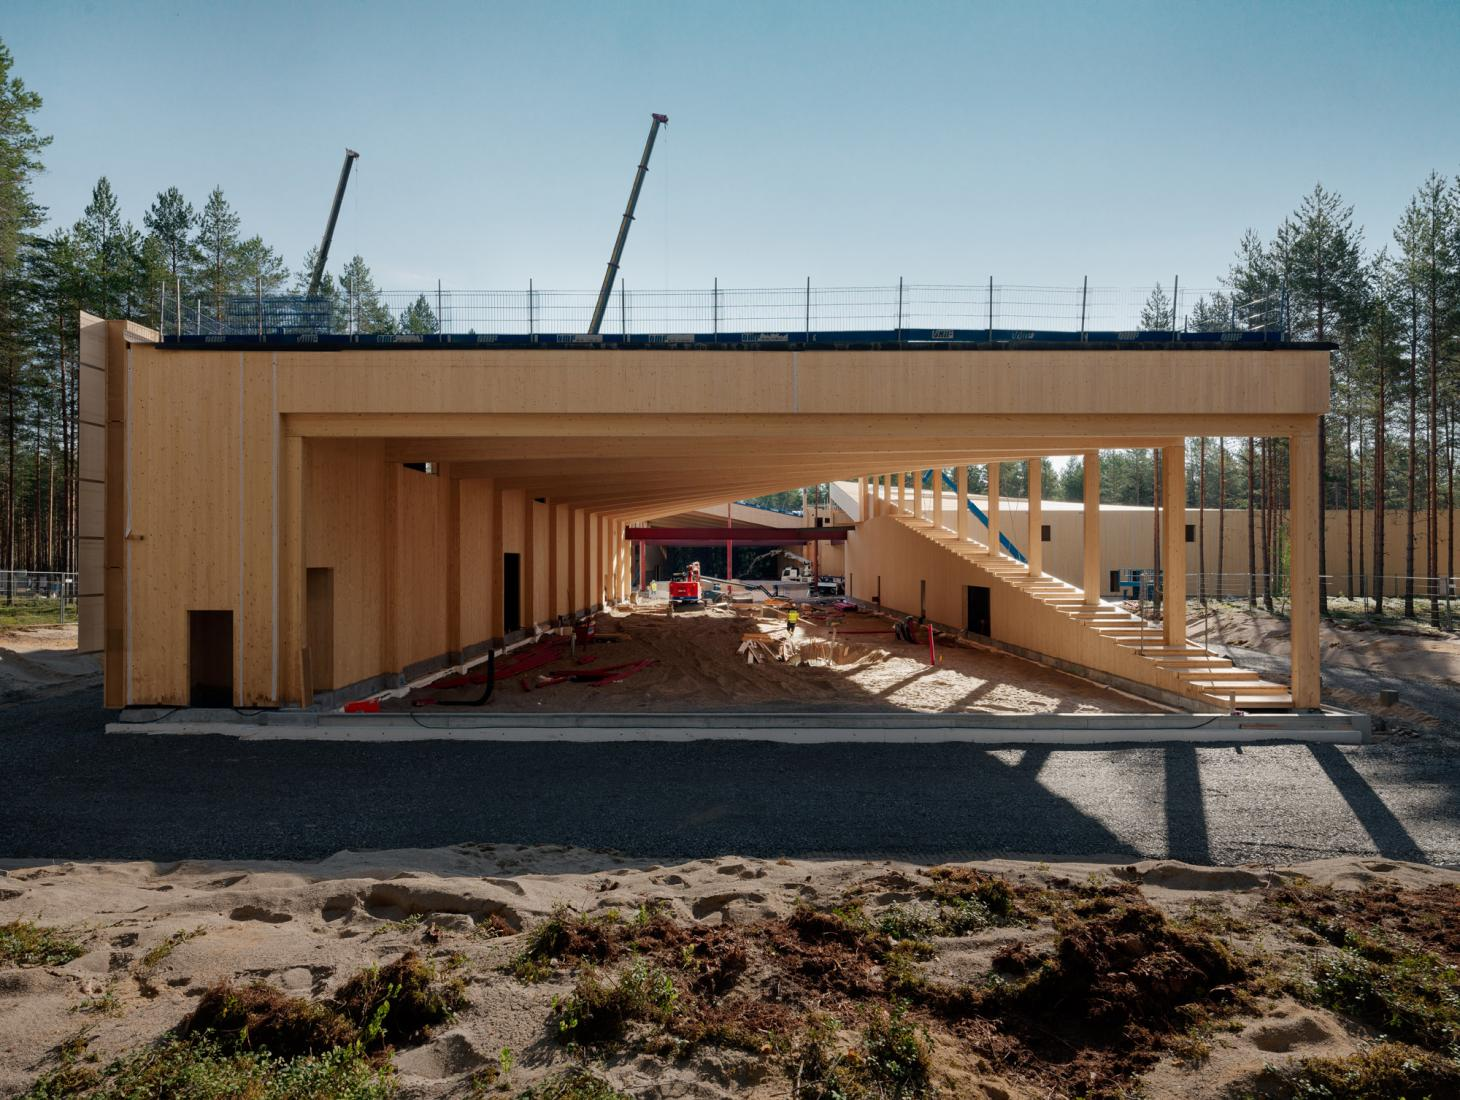 the timber frame of the world's most sustainable factory, according to BIG